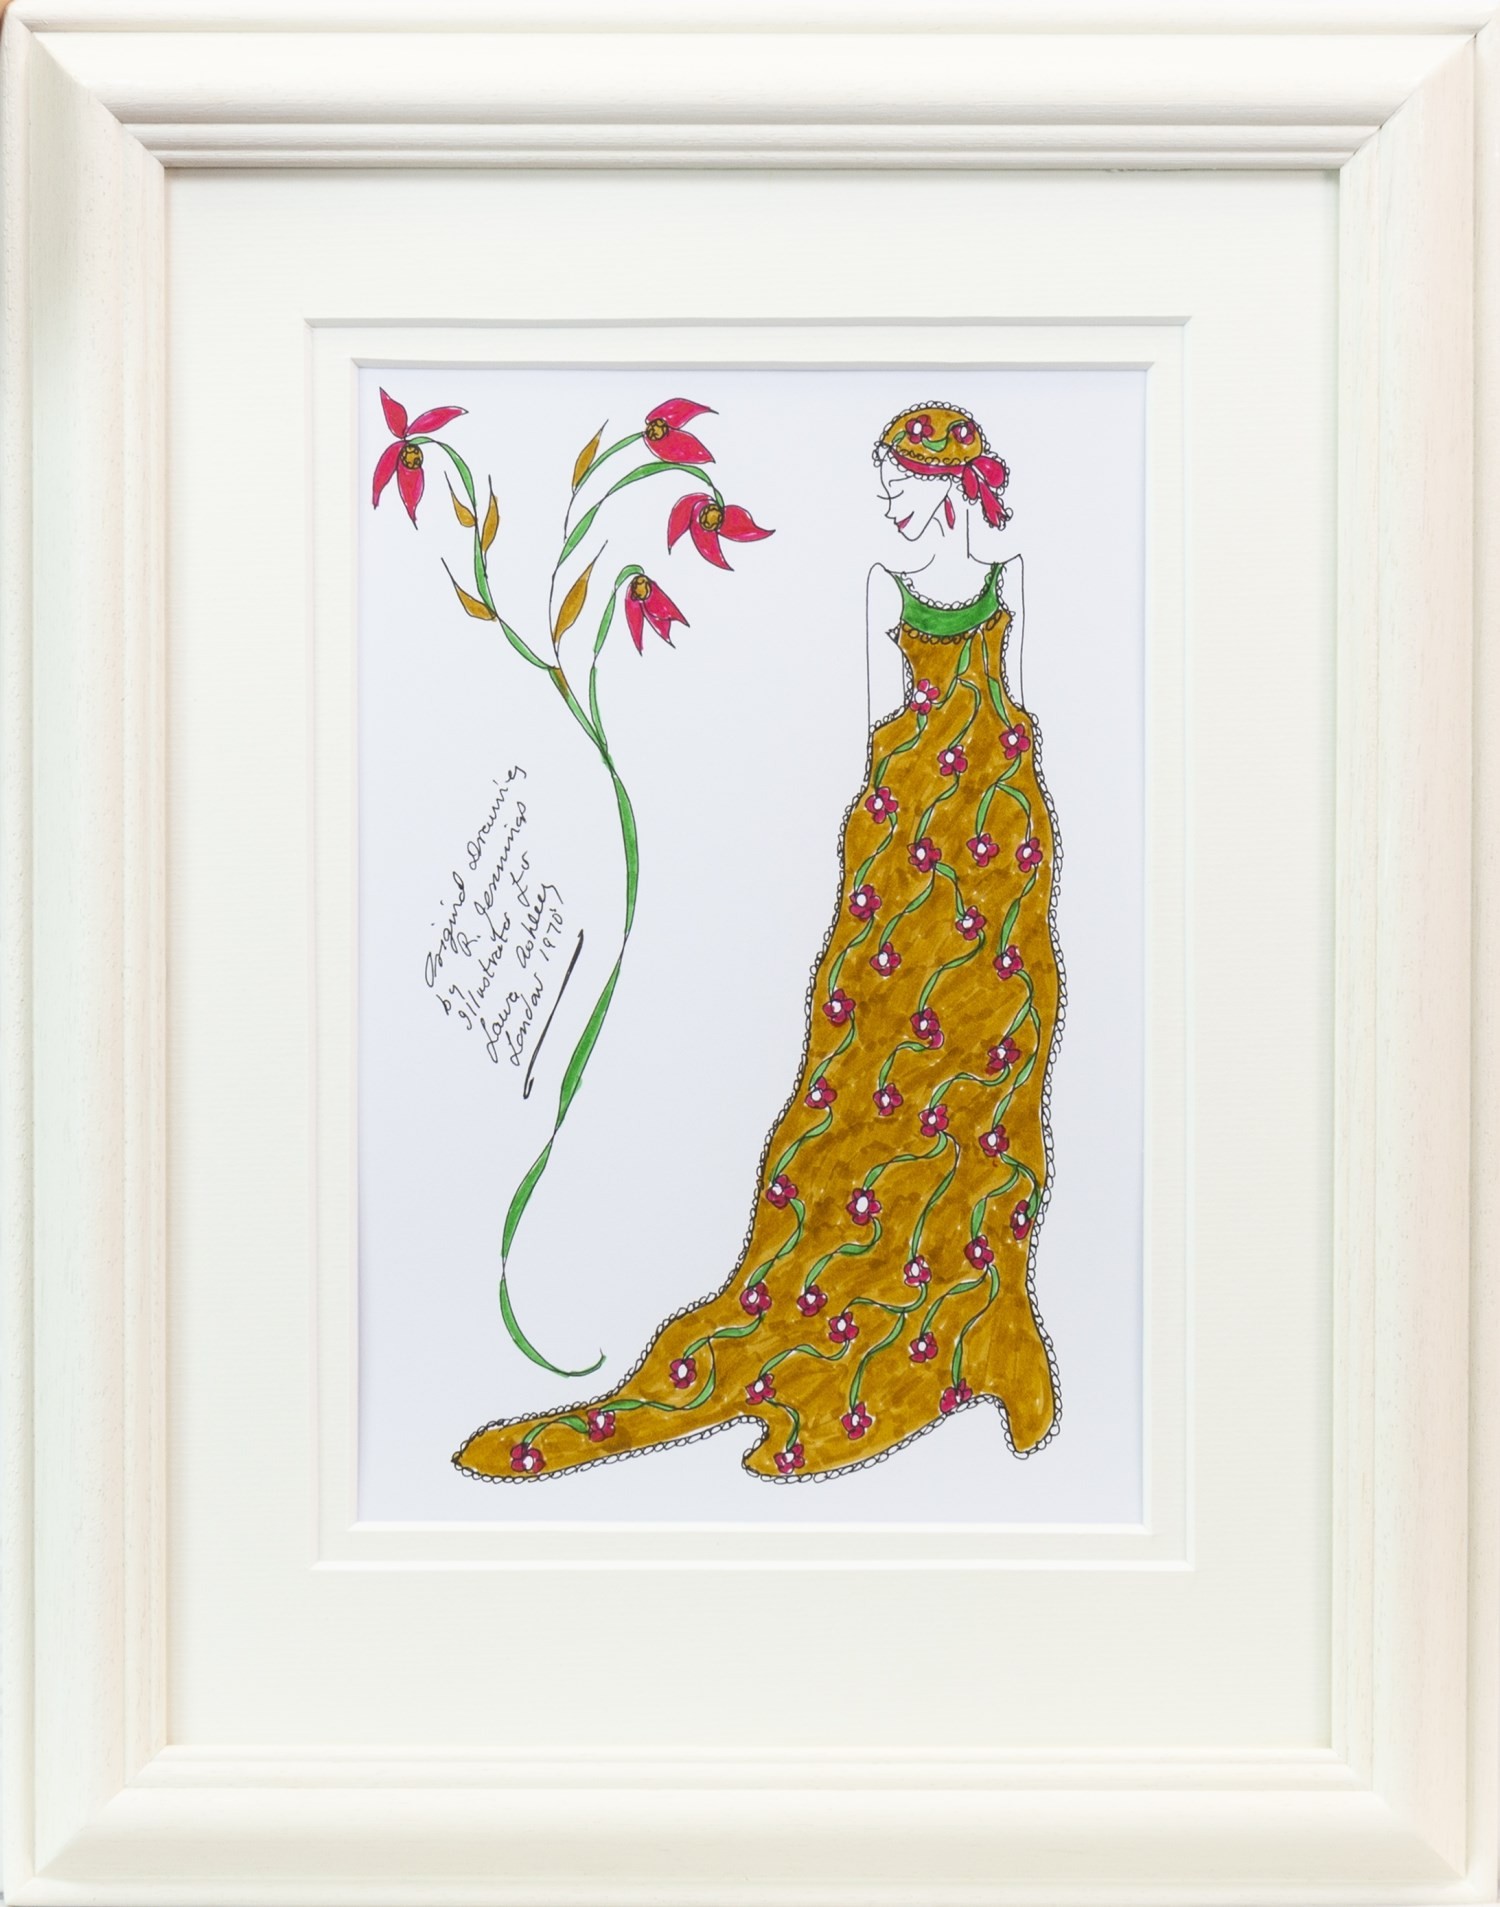 Lot 39 - AN ORIGINAL ILLUSTRATION FOR LAURA ASHLEY, BY ROZ JENNINGS